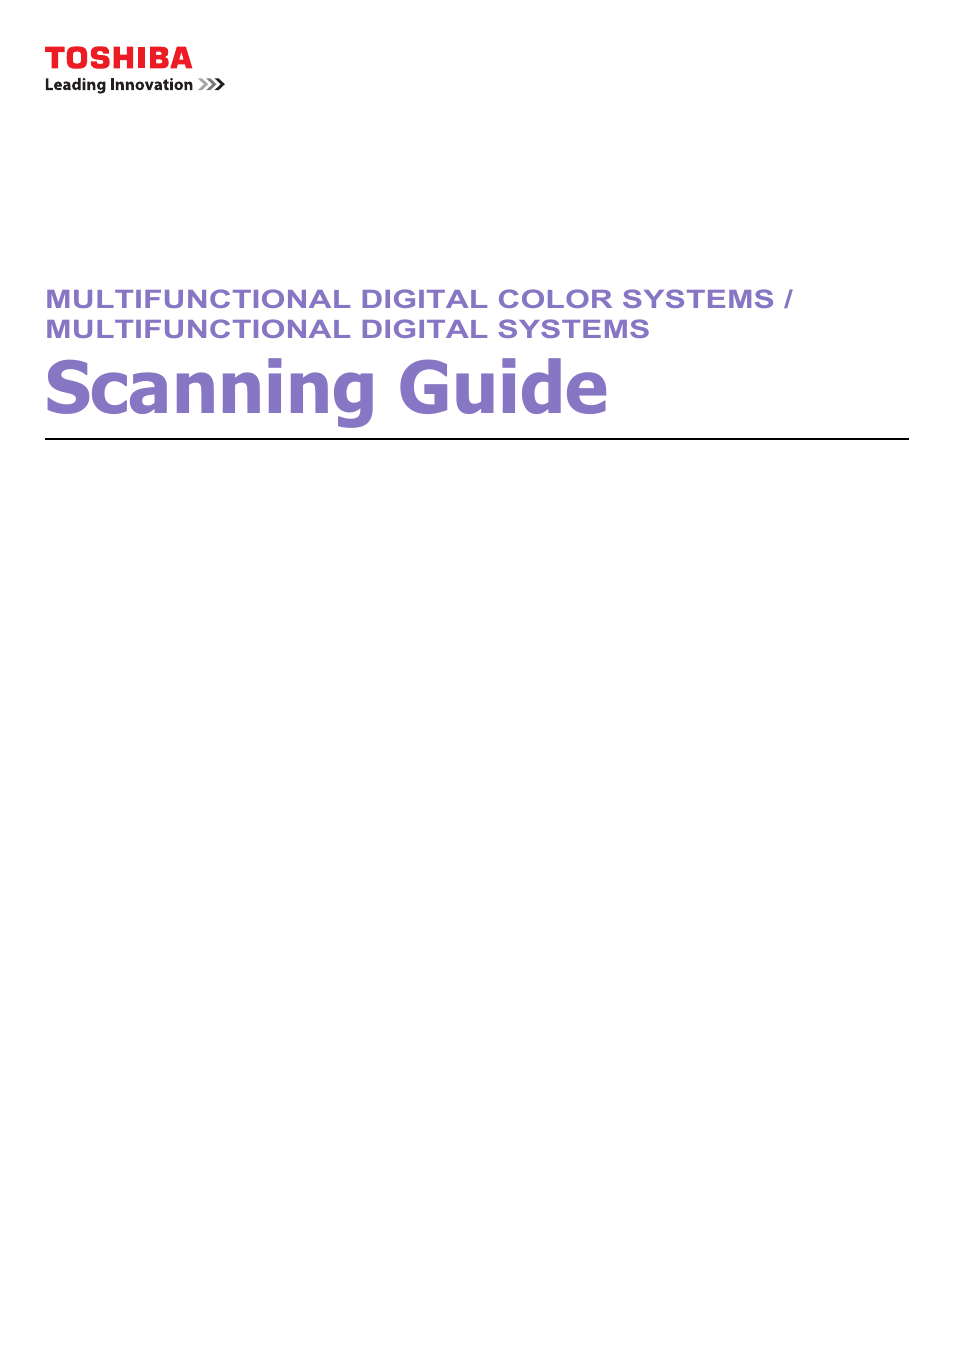 Toshiba e-STUDIO Multifunctional Digital Systems 356SE User Manual | 124  pages | Also for: e-STUDIO Multifunctional Digital Systems 306SE, ...